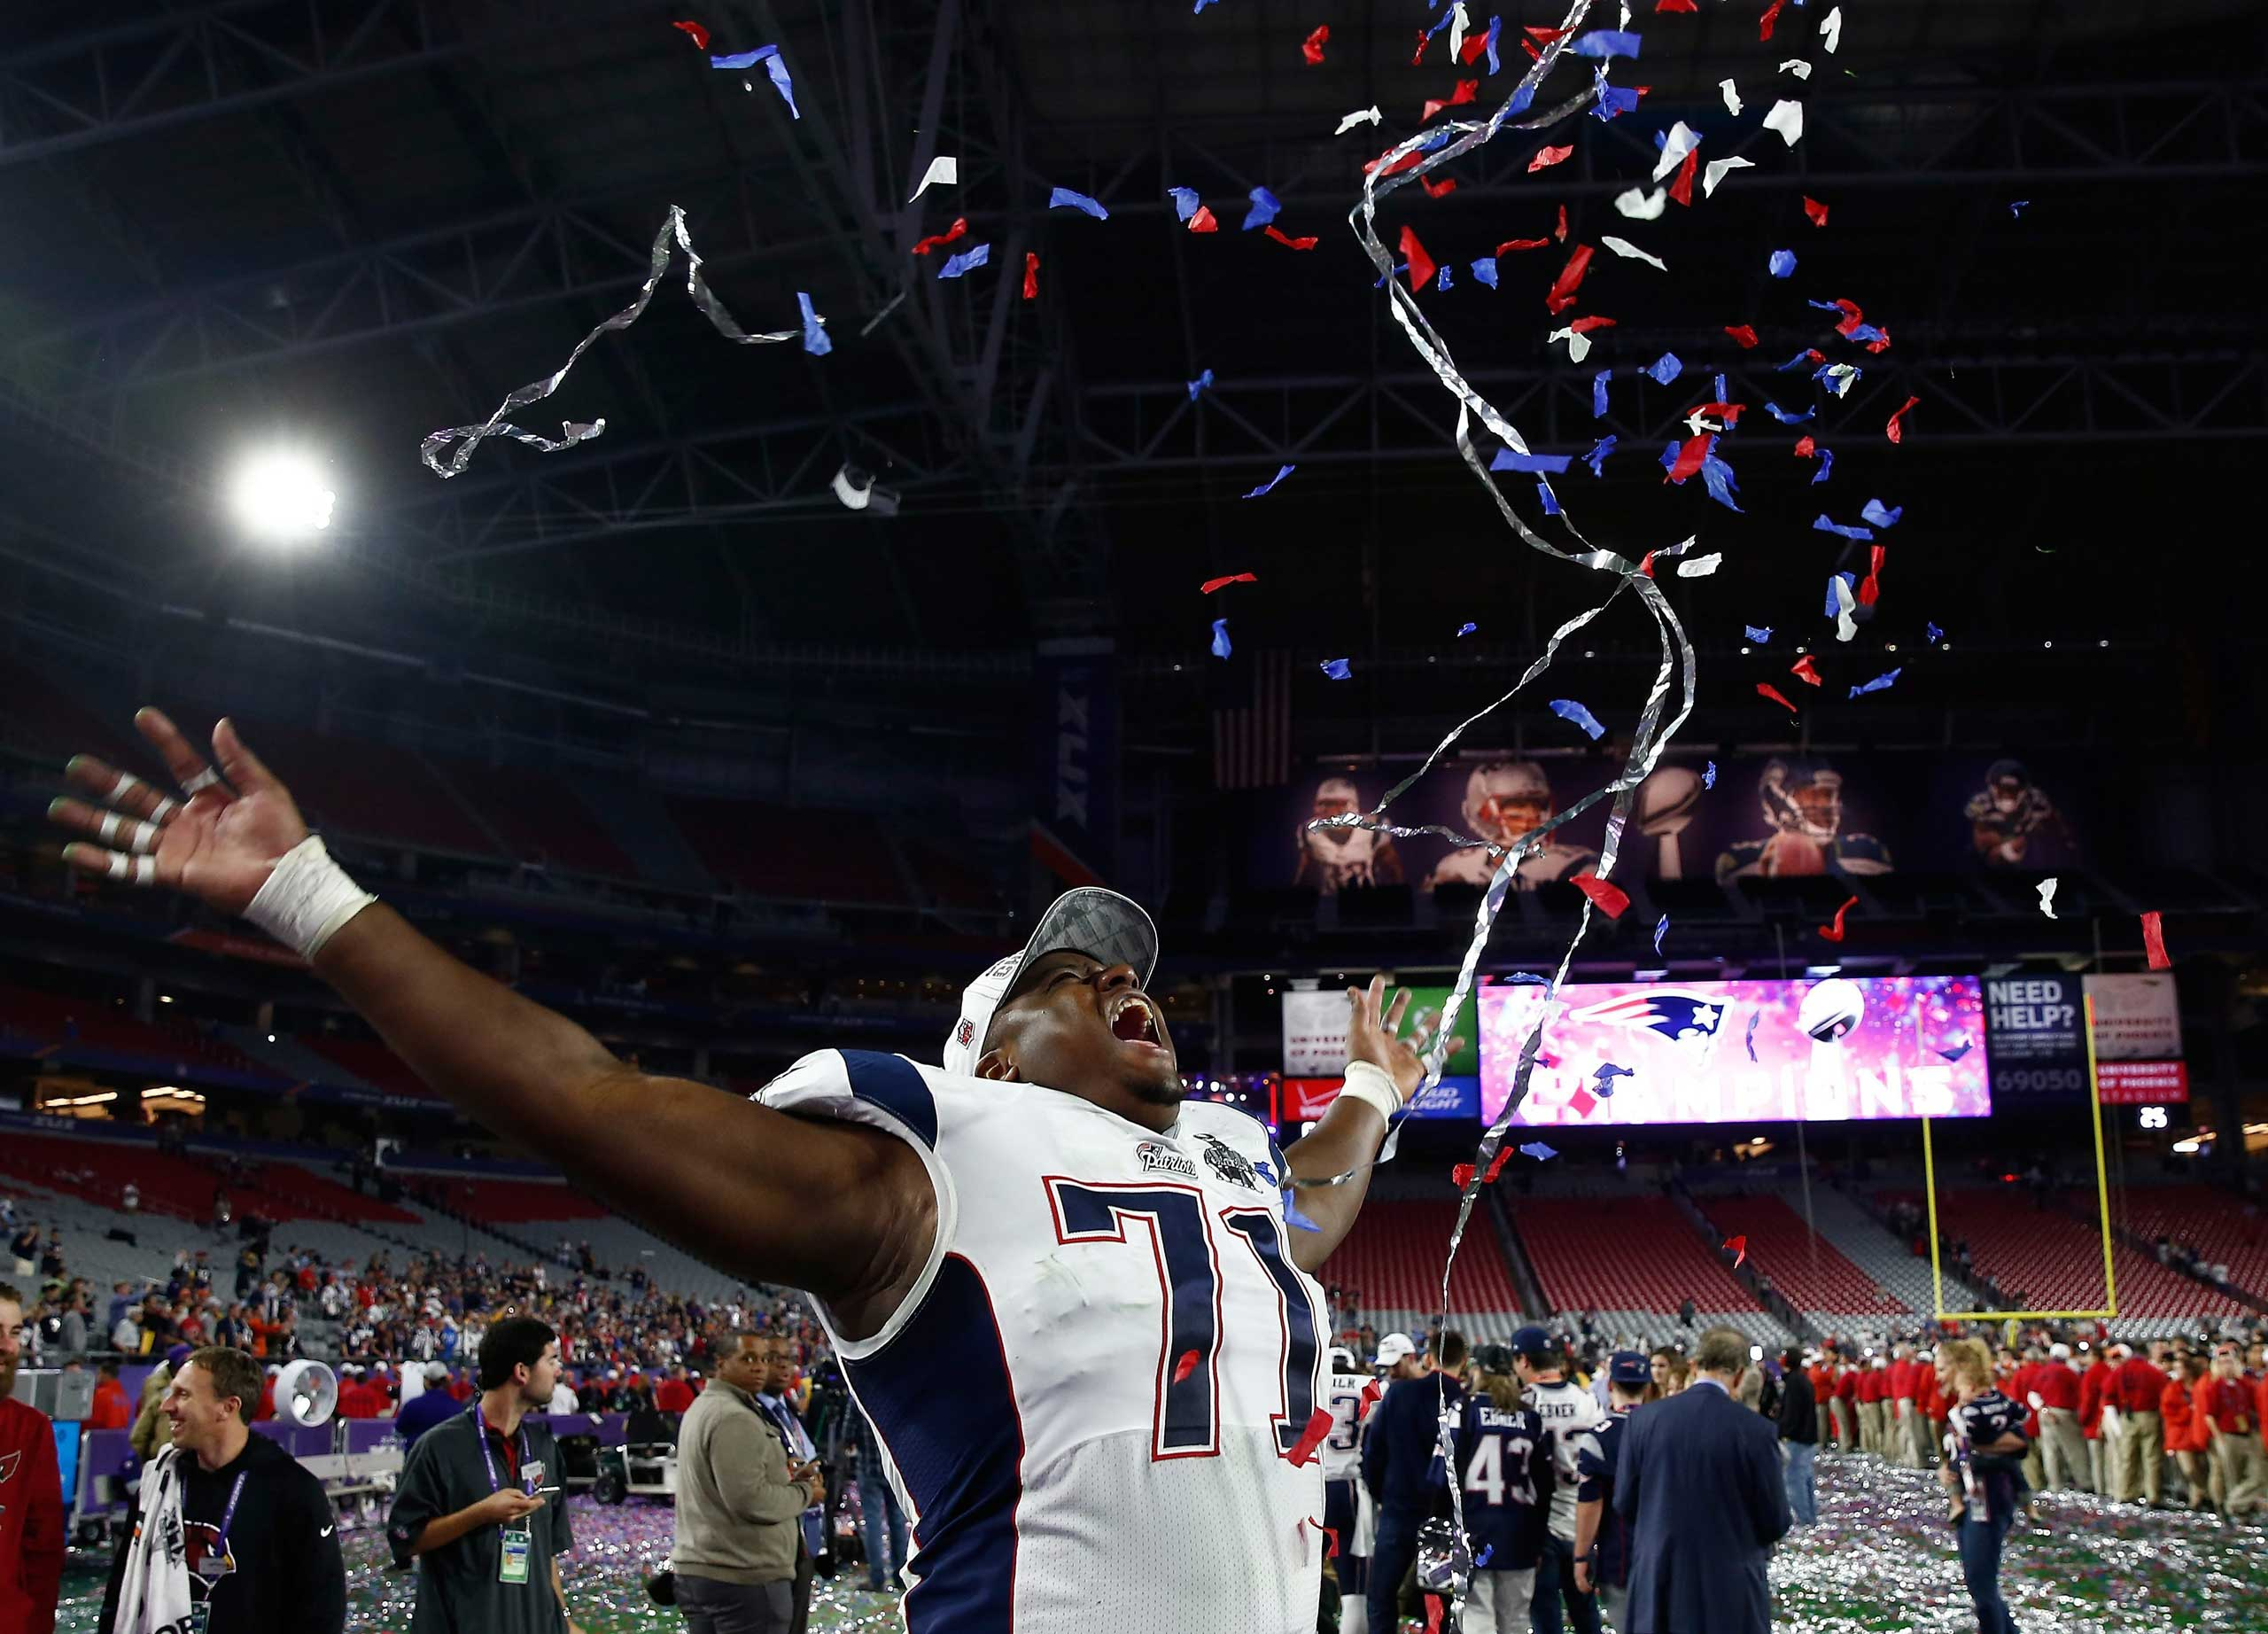 Cameron Fleming of the New England Patriots throws confetti in the air after the New England Patriots defeated the Seattle Seahawks to win Super Bowl XLIX in Glendale, Ariz. on Feb. 1, 2015.